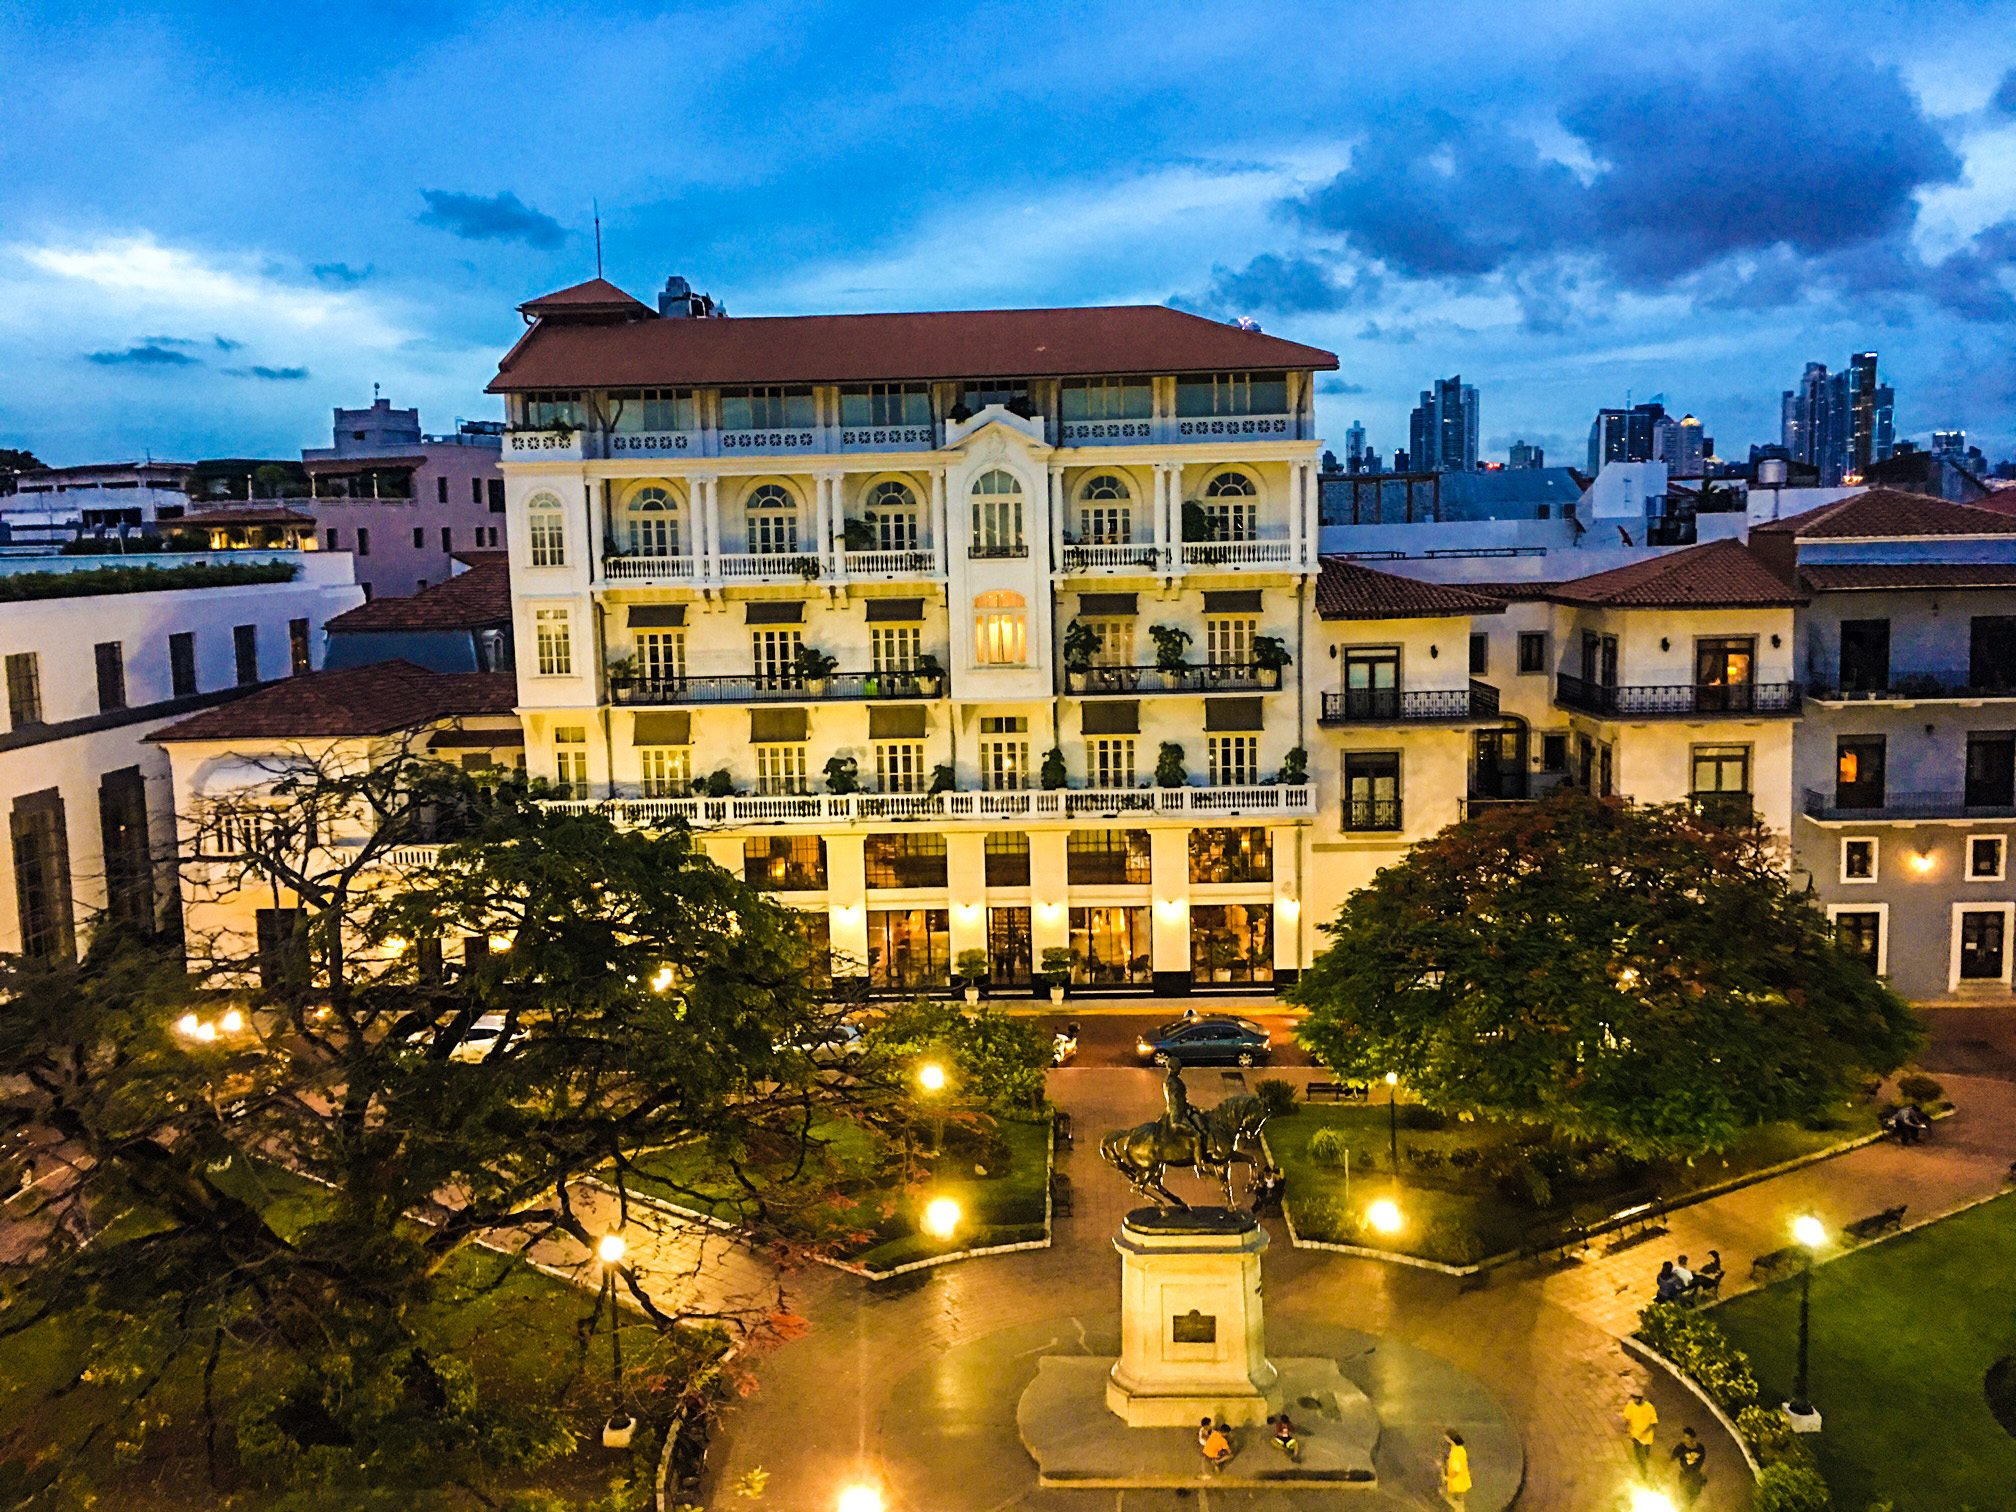 Casco Viejo Stepping Back In Time The Panama Perspective